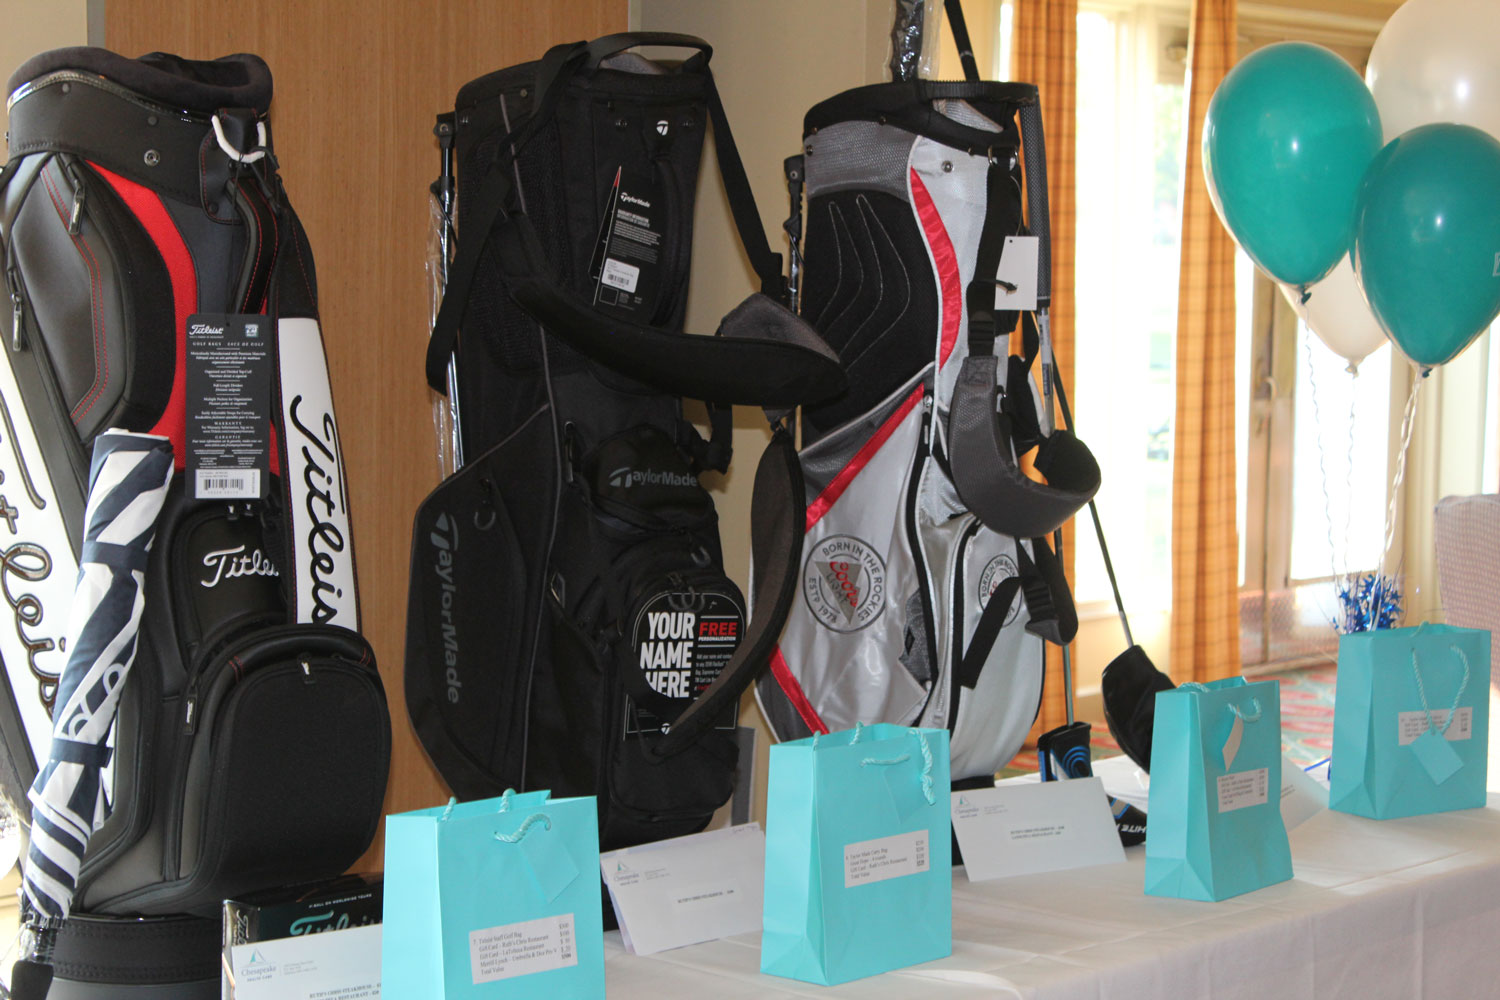 Chesapeake Health Care 6th Annual Golf Tournament gallery image #12